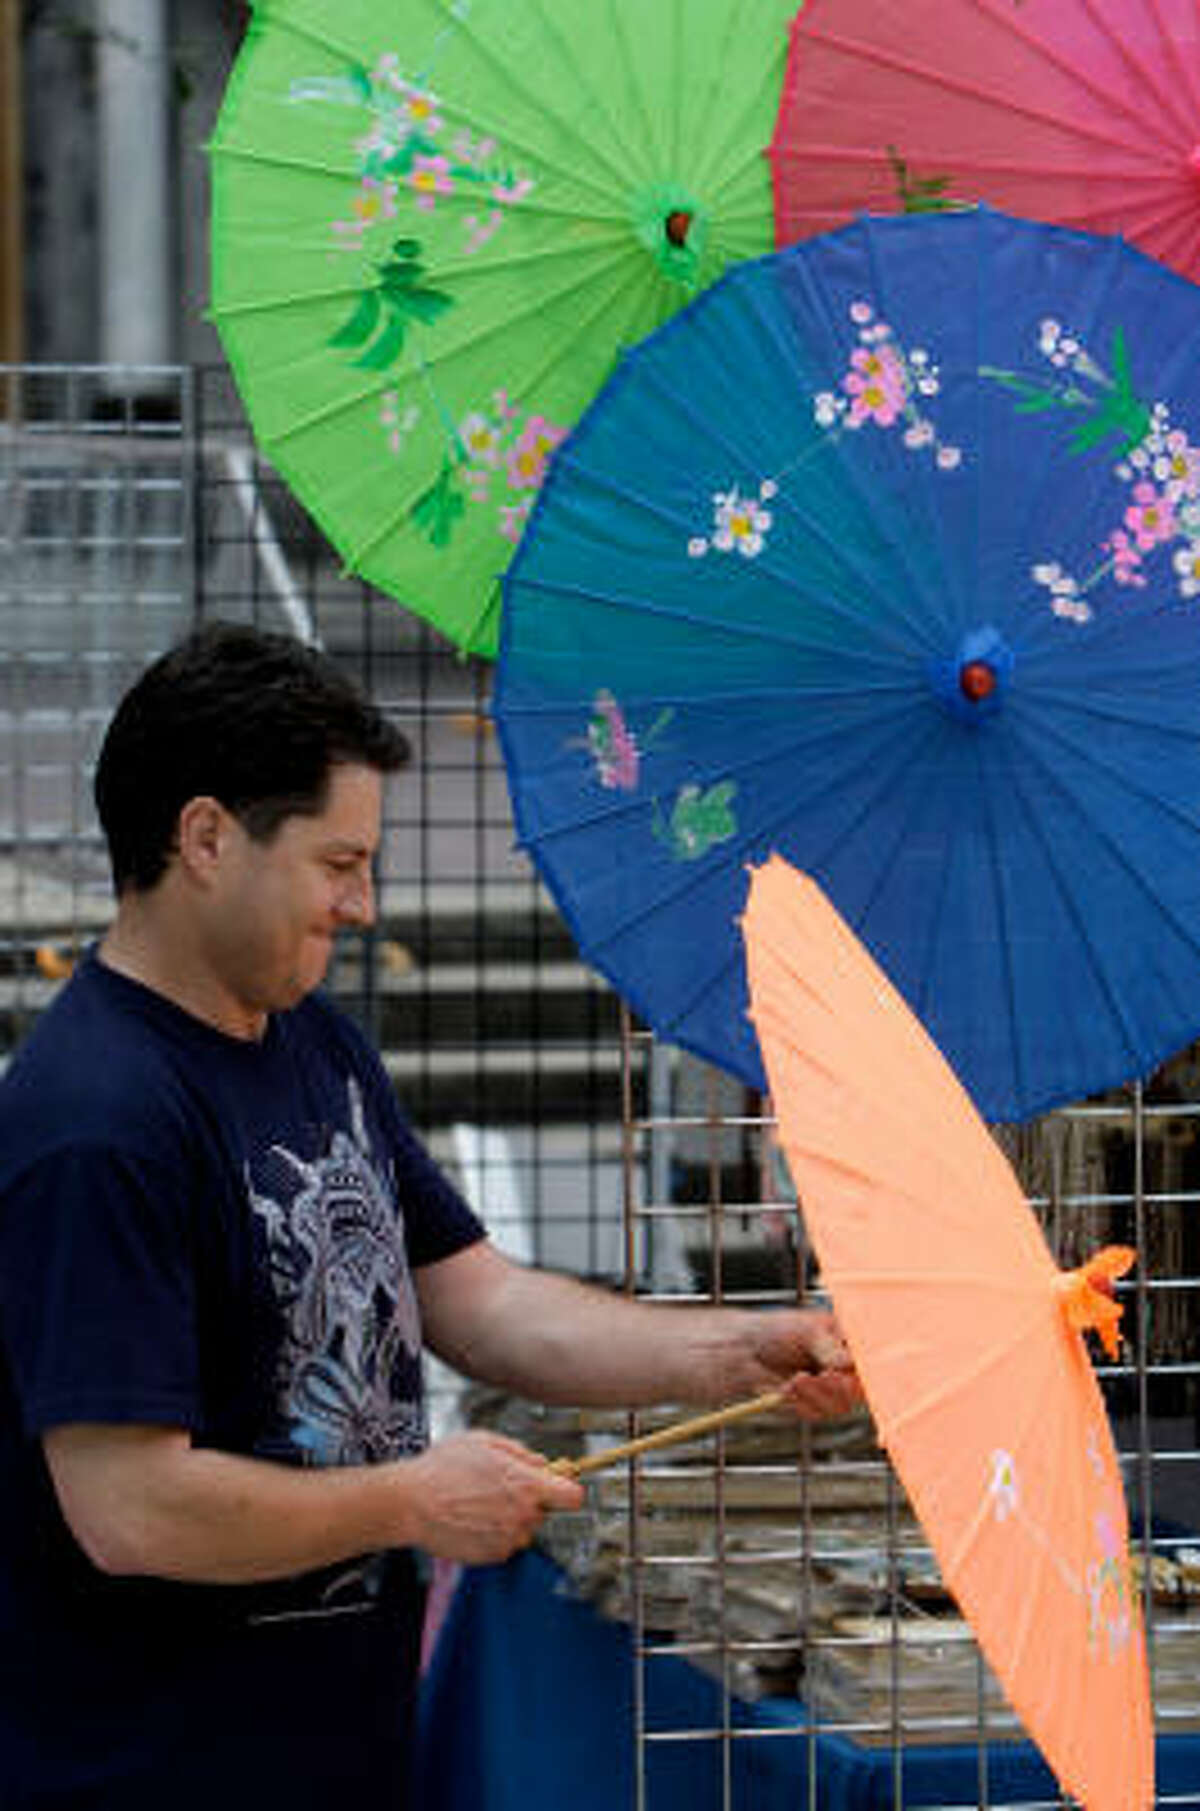 George Bass of San Antonio displays hand-painted bamboo umbrellas at his booth named World of Wonders at iFest the Houston International Festival held downtown in Houston.